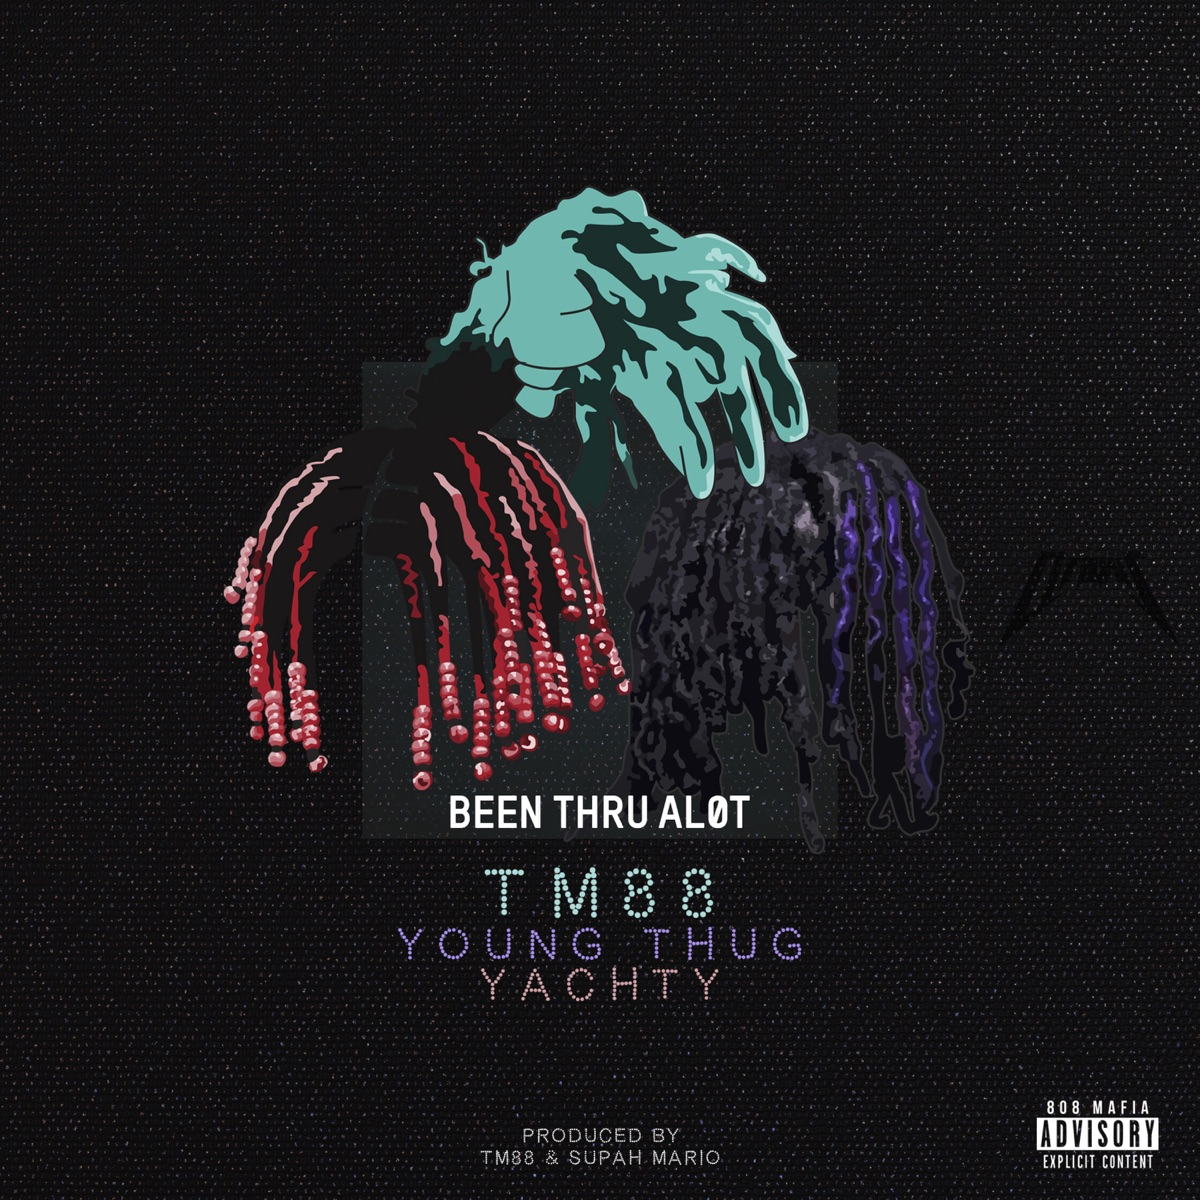 Been Thru a Lot - Single TM88 Young Thug  Lil Yachty CD cover